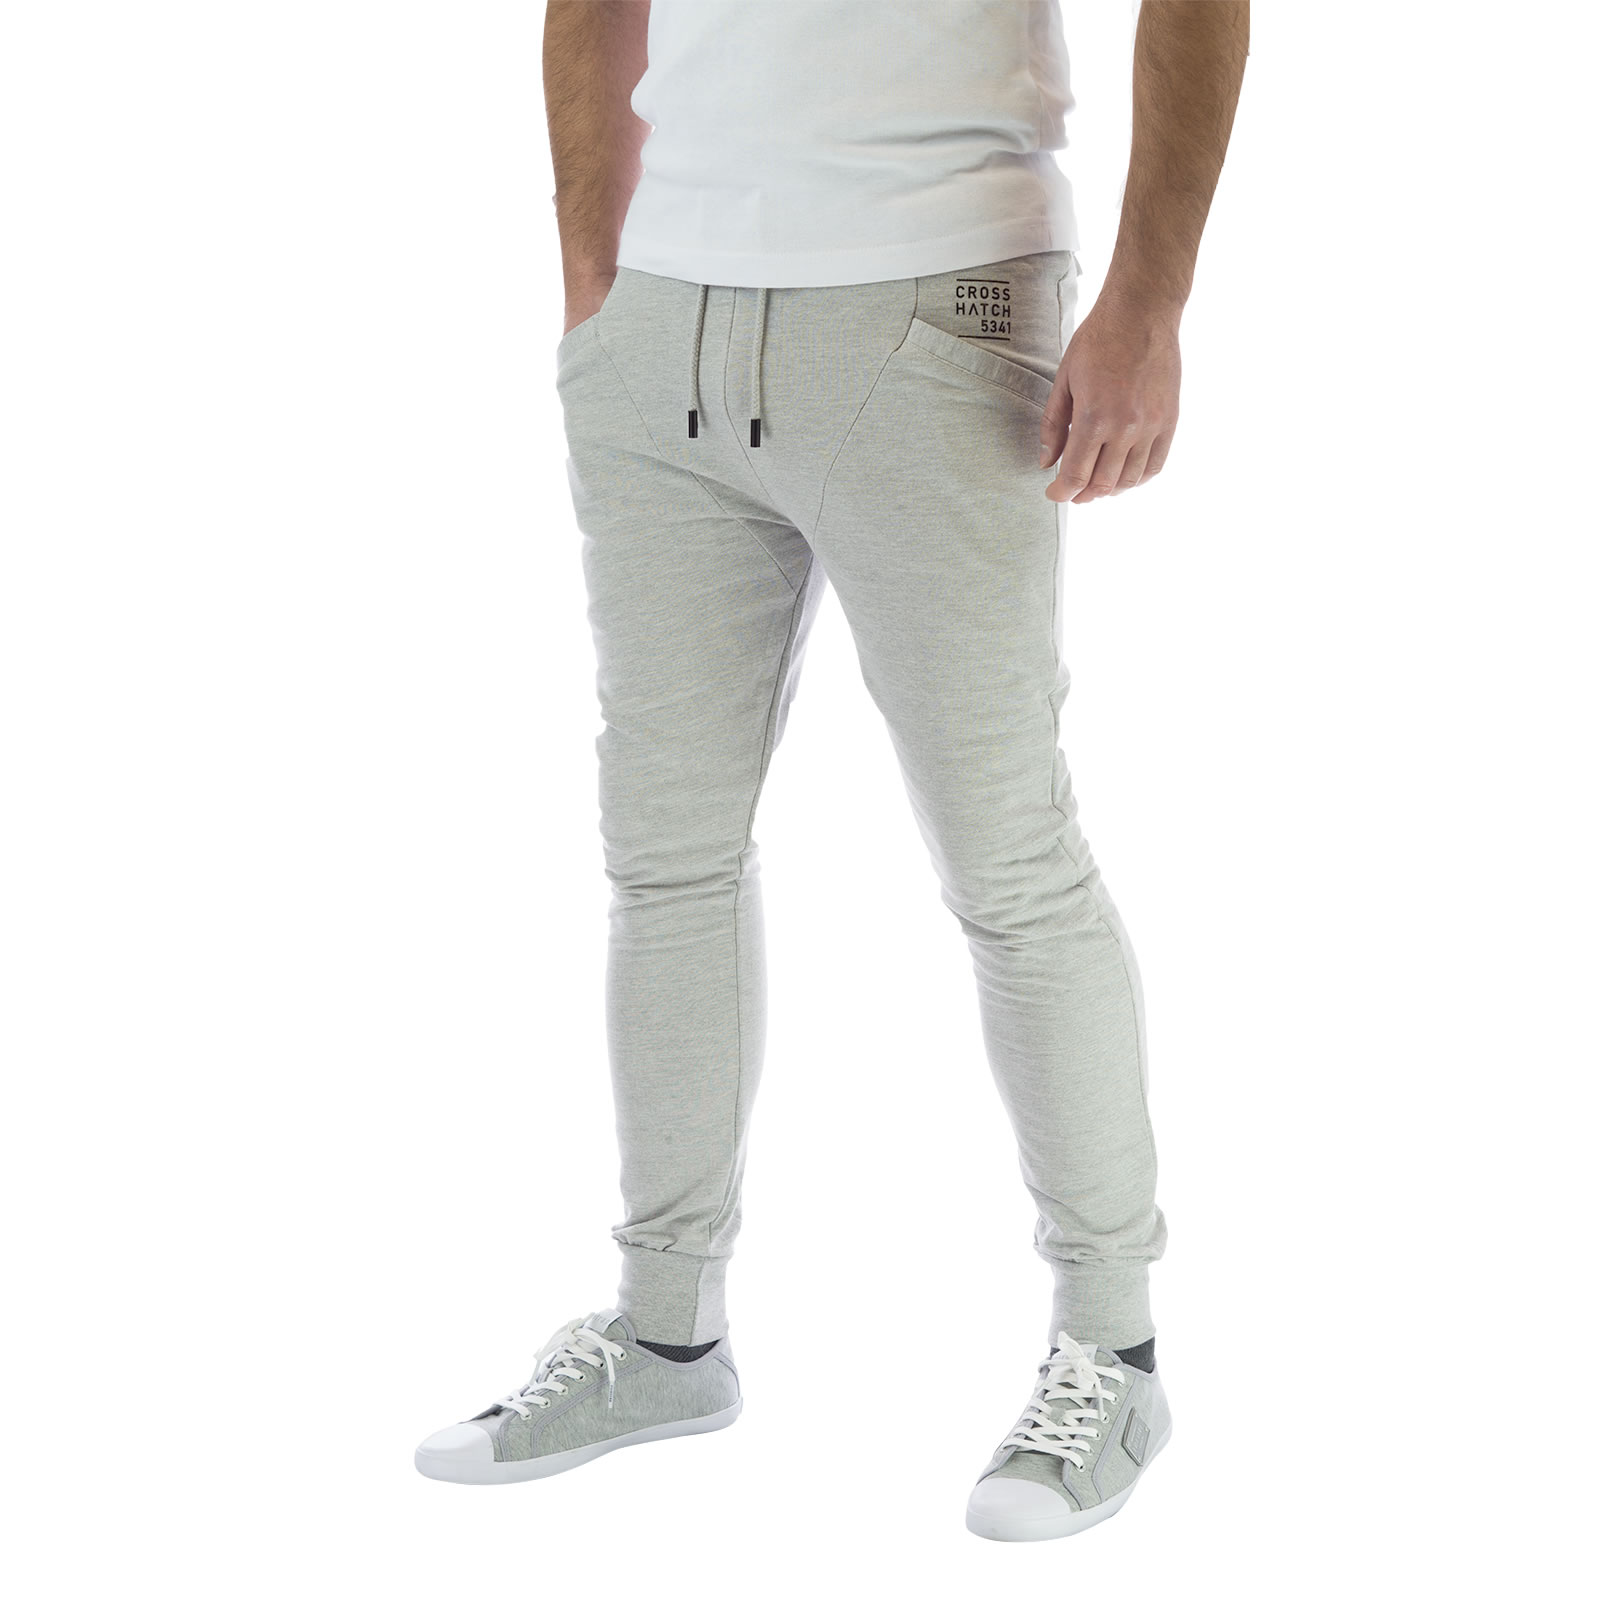 View all mens clothing Welcome to the Sports Direct Mens Sweatpants category. Here you will find a huge variety of sweatpants and joggers. Whether you're working out or chilling out we're sure to have the perfect pair of jogging bottoms for you.